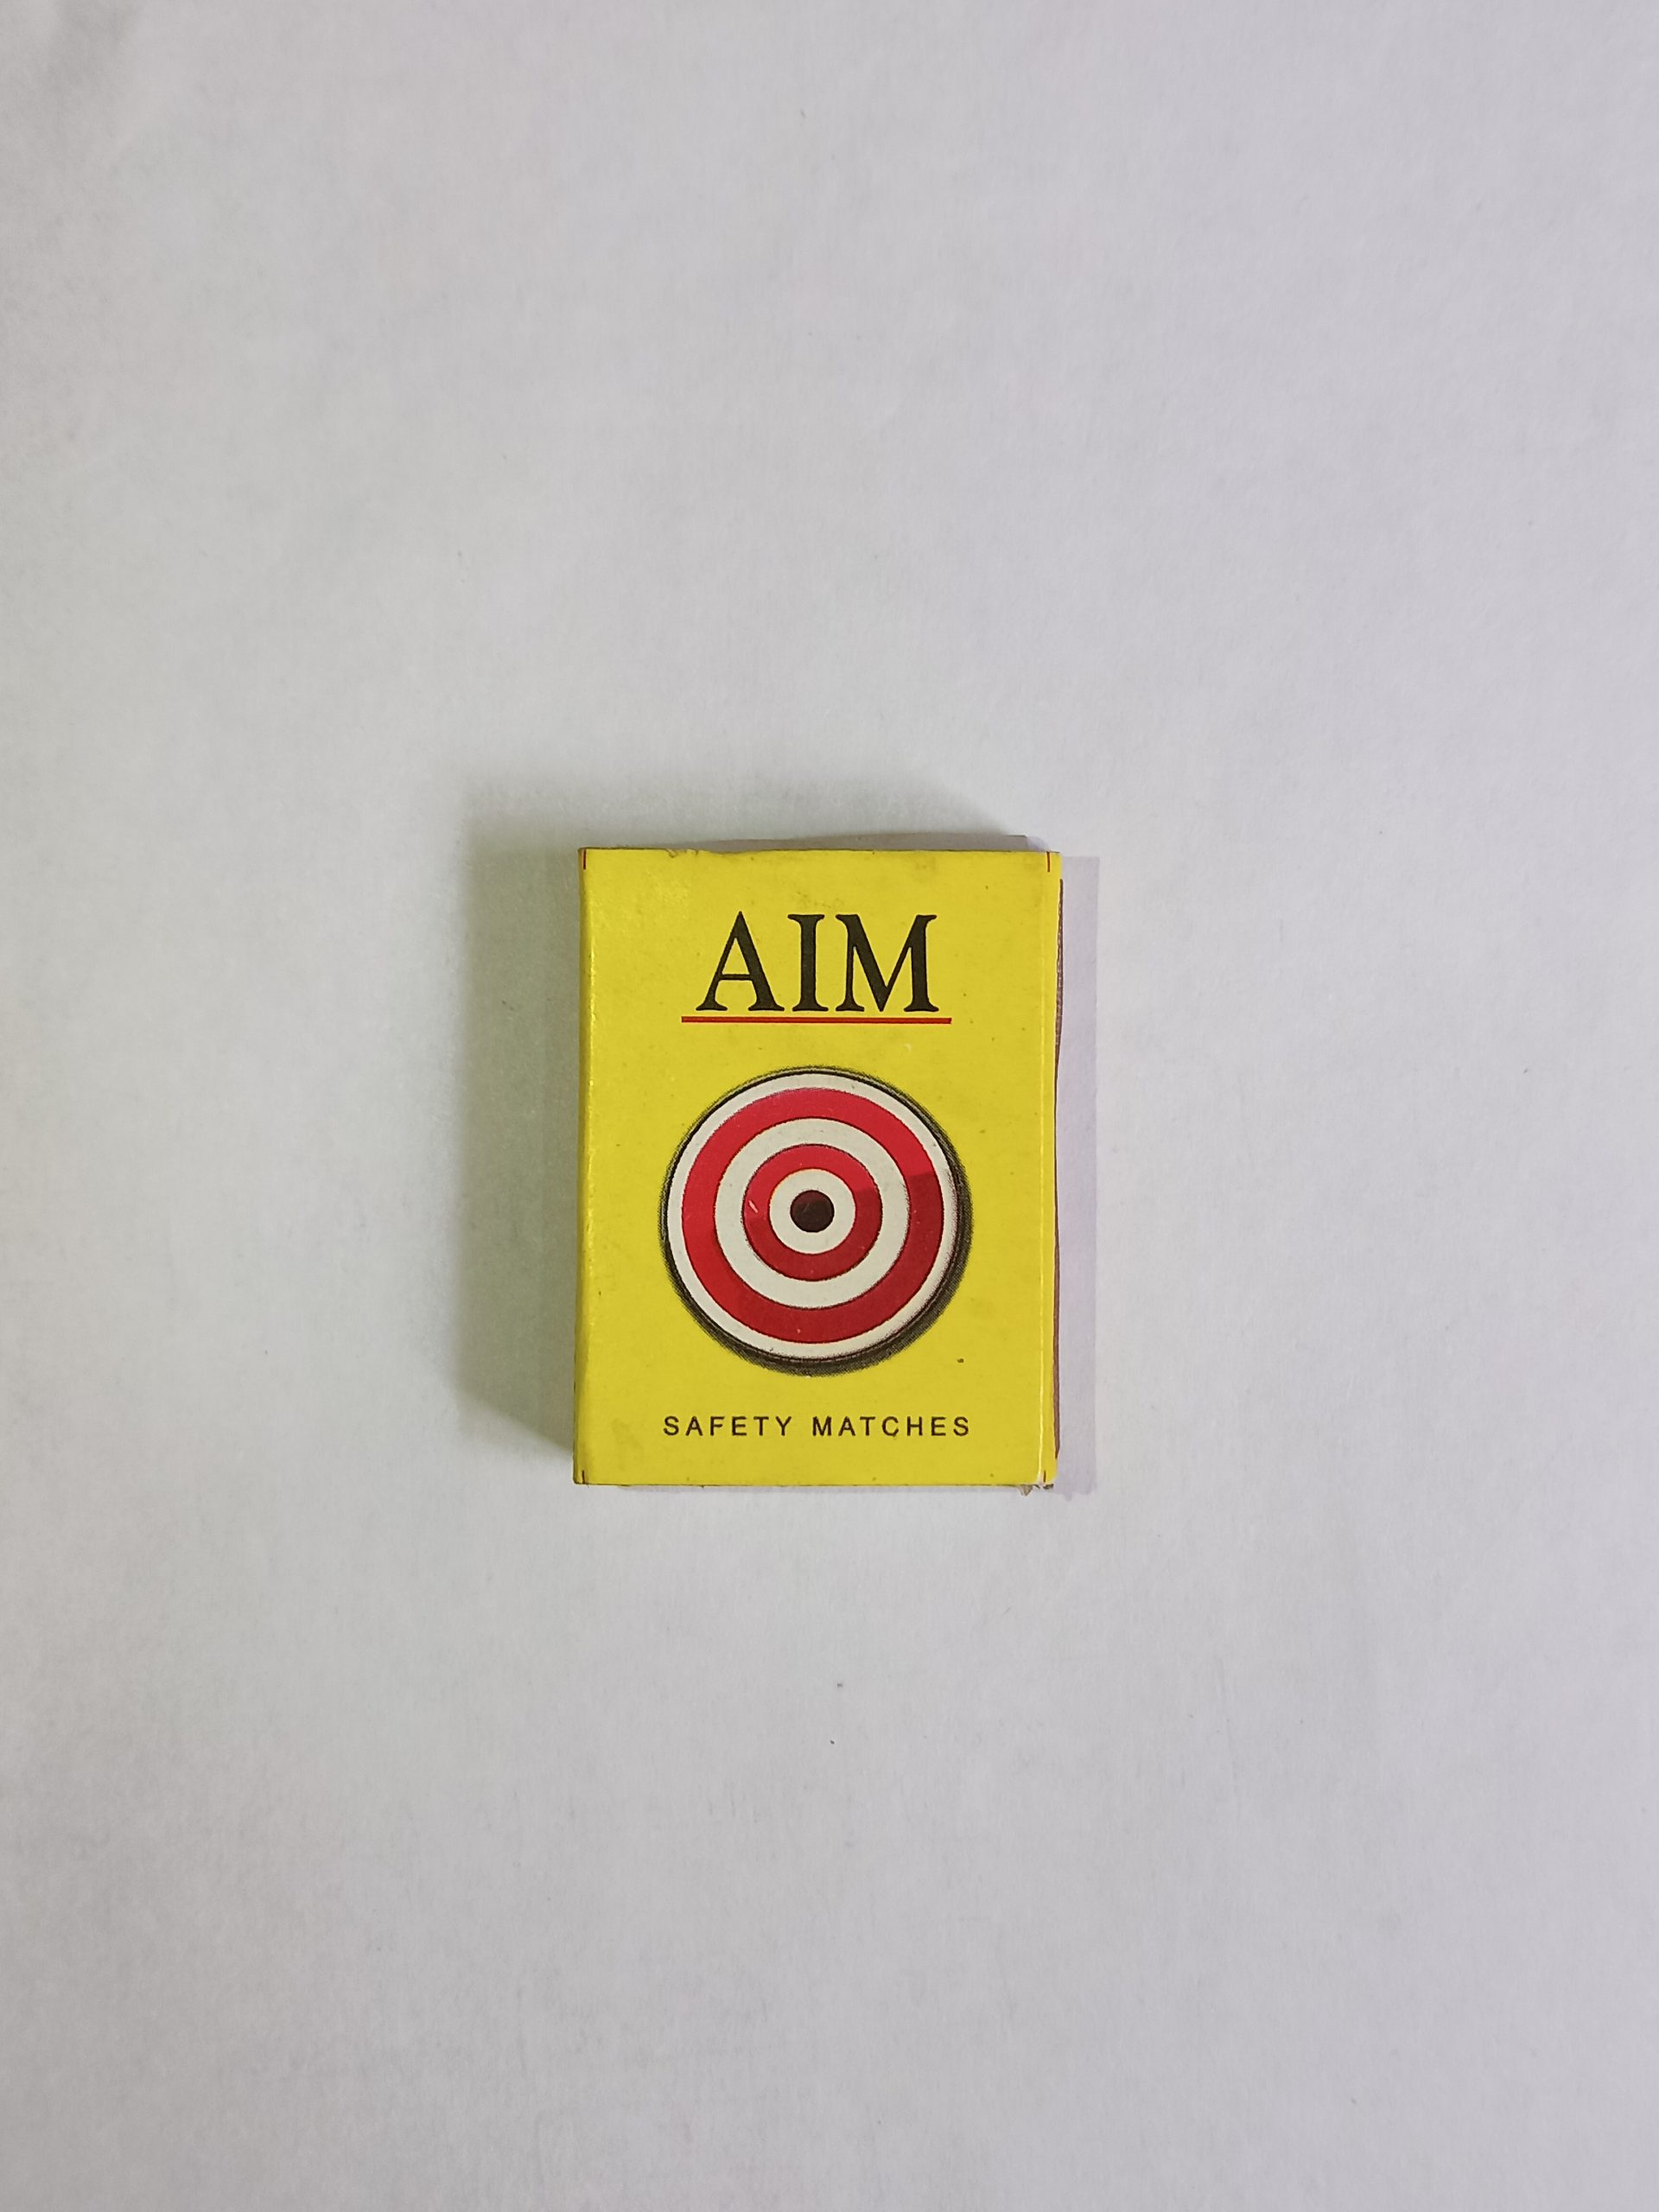 Aim match box